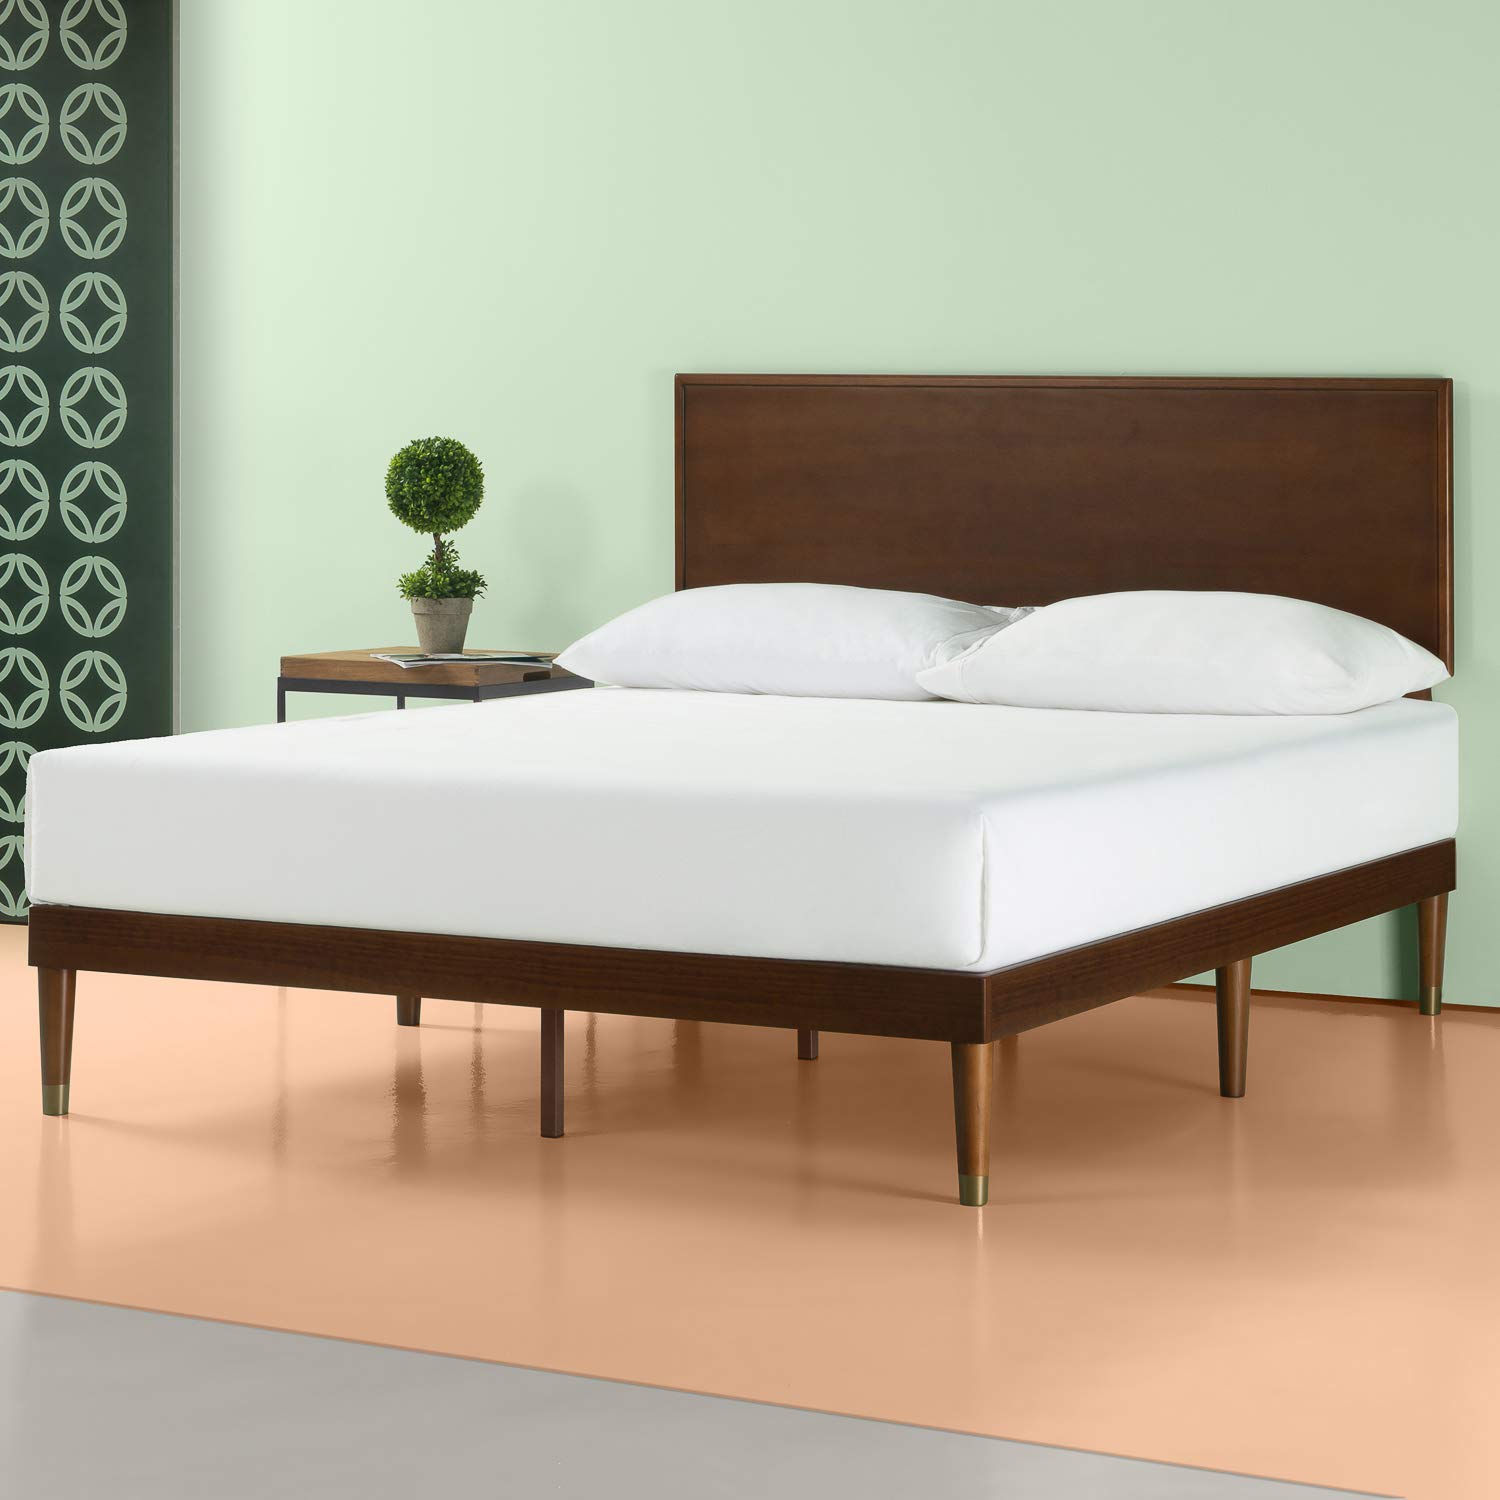 Zinus Deluxe Mid-Century Wood Platform Bed with Adjustable height Headboard, no Box Spring needed, King by Zinus